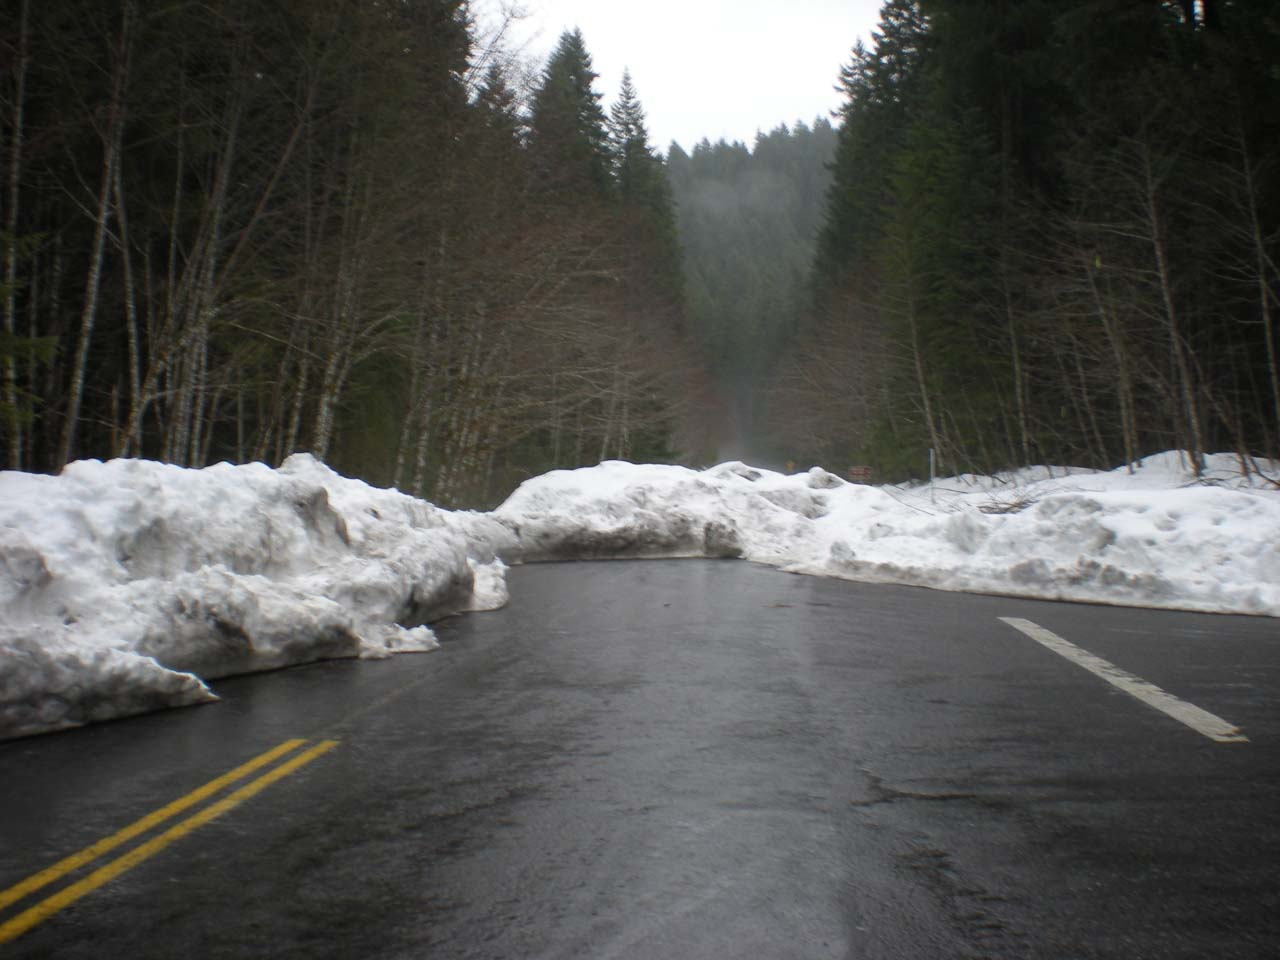 Road to Curly Creek Falls blocked by snow